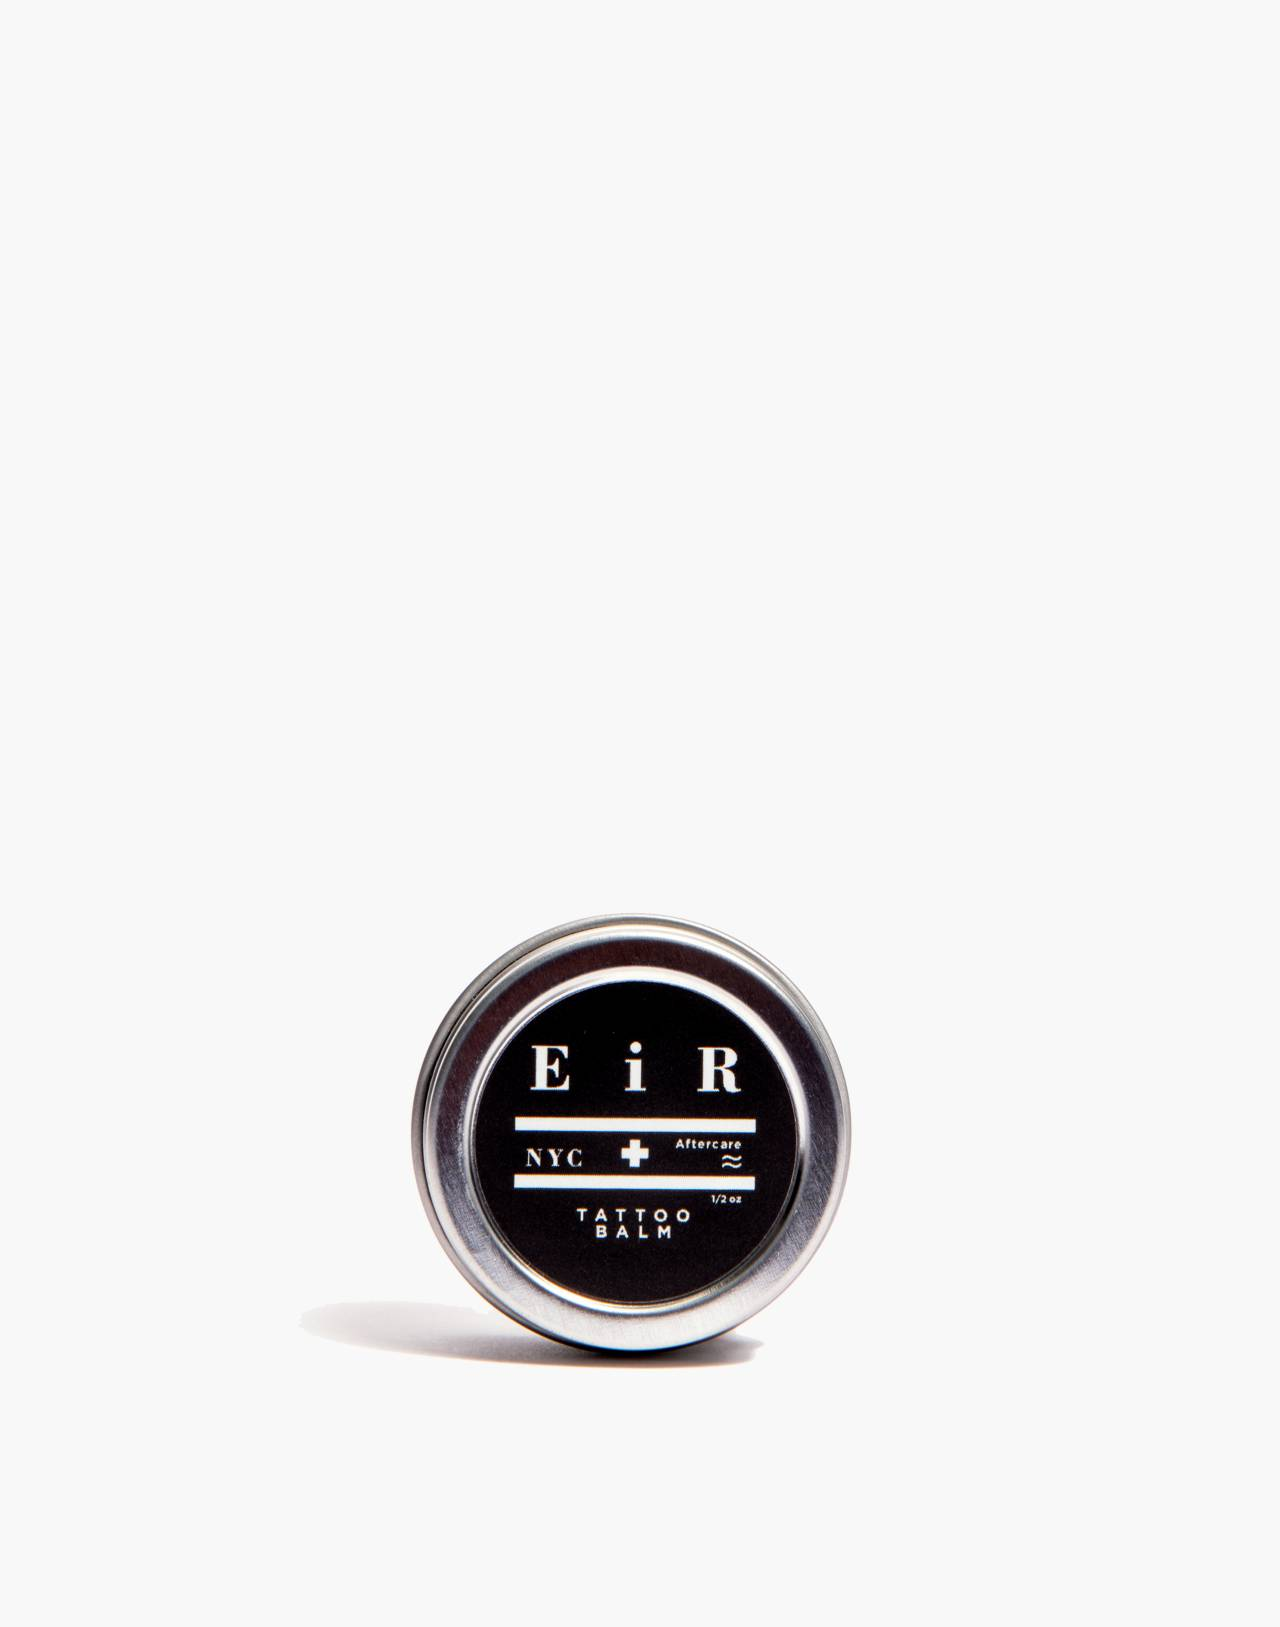 Eir NYC® Tattoo Balm in one color image 1